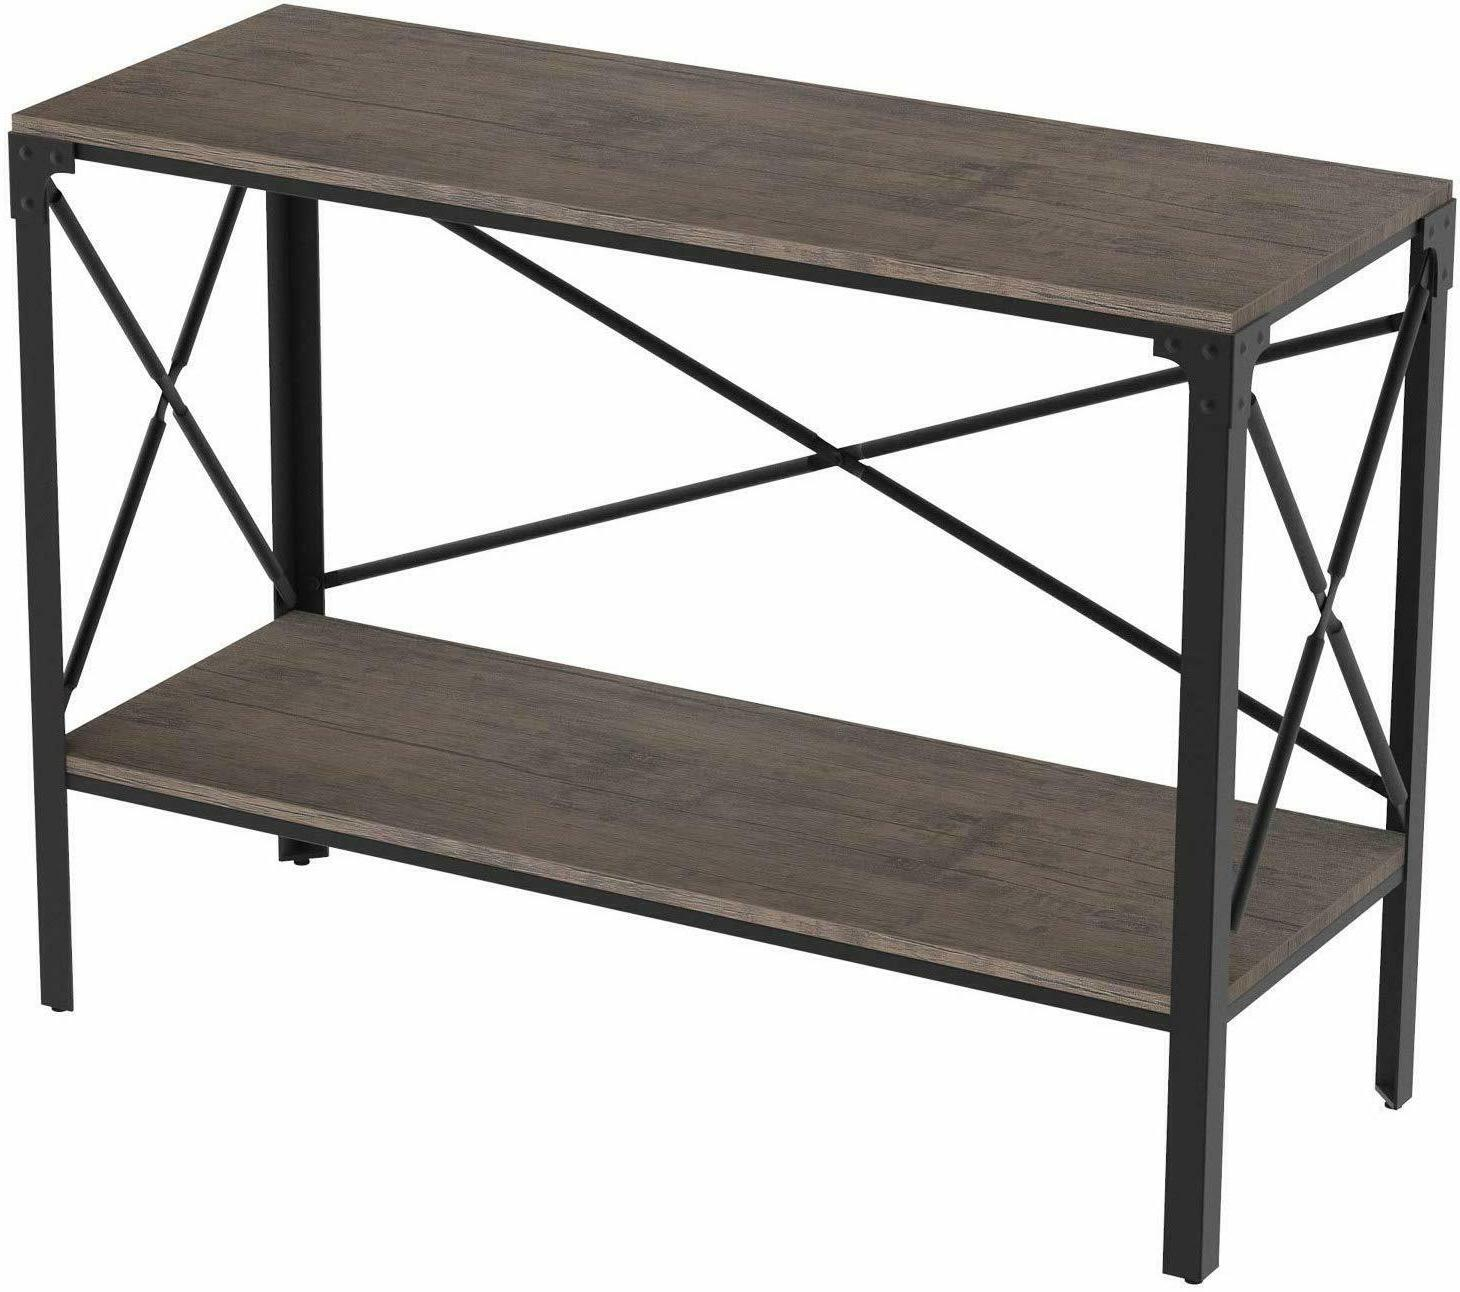 IRONCK Rustic Console Table 2 Tier, Entryway Table with Stor